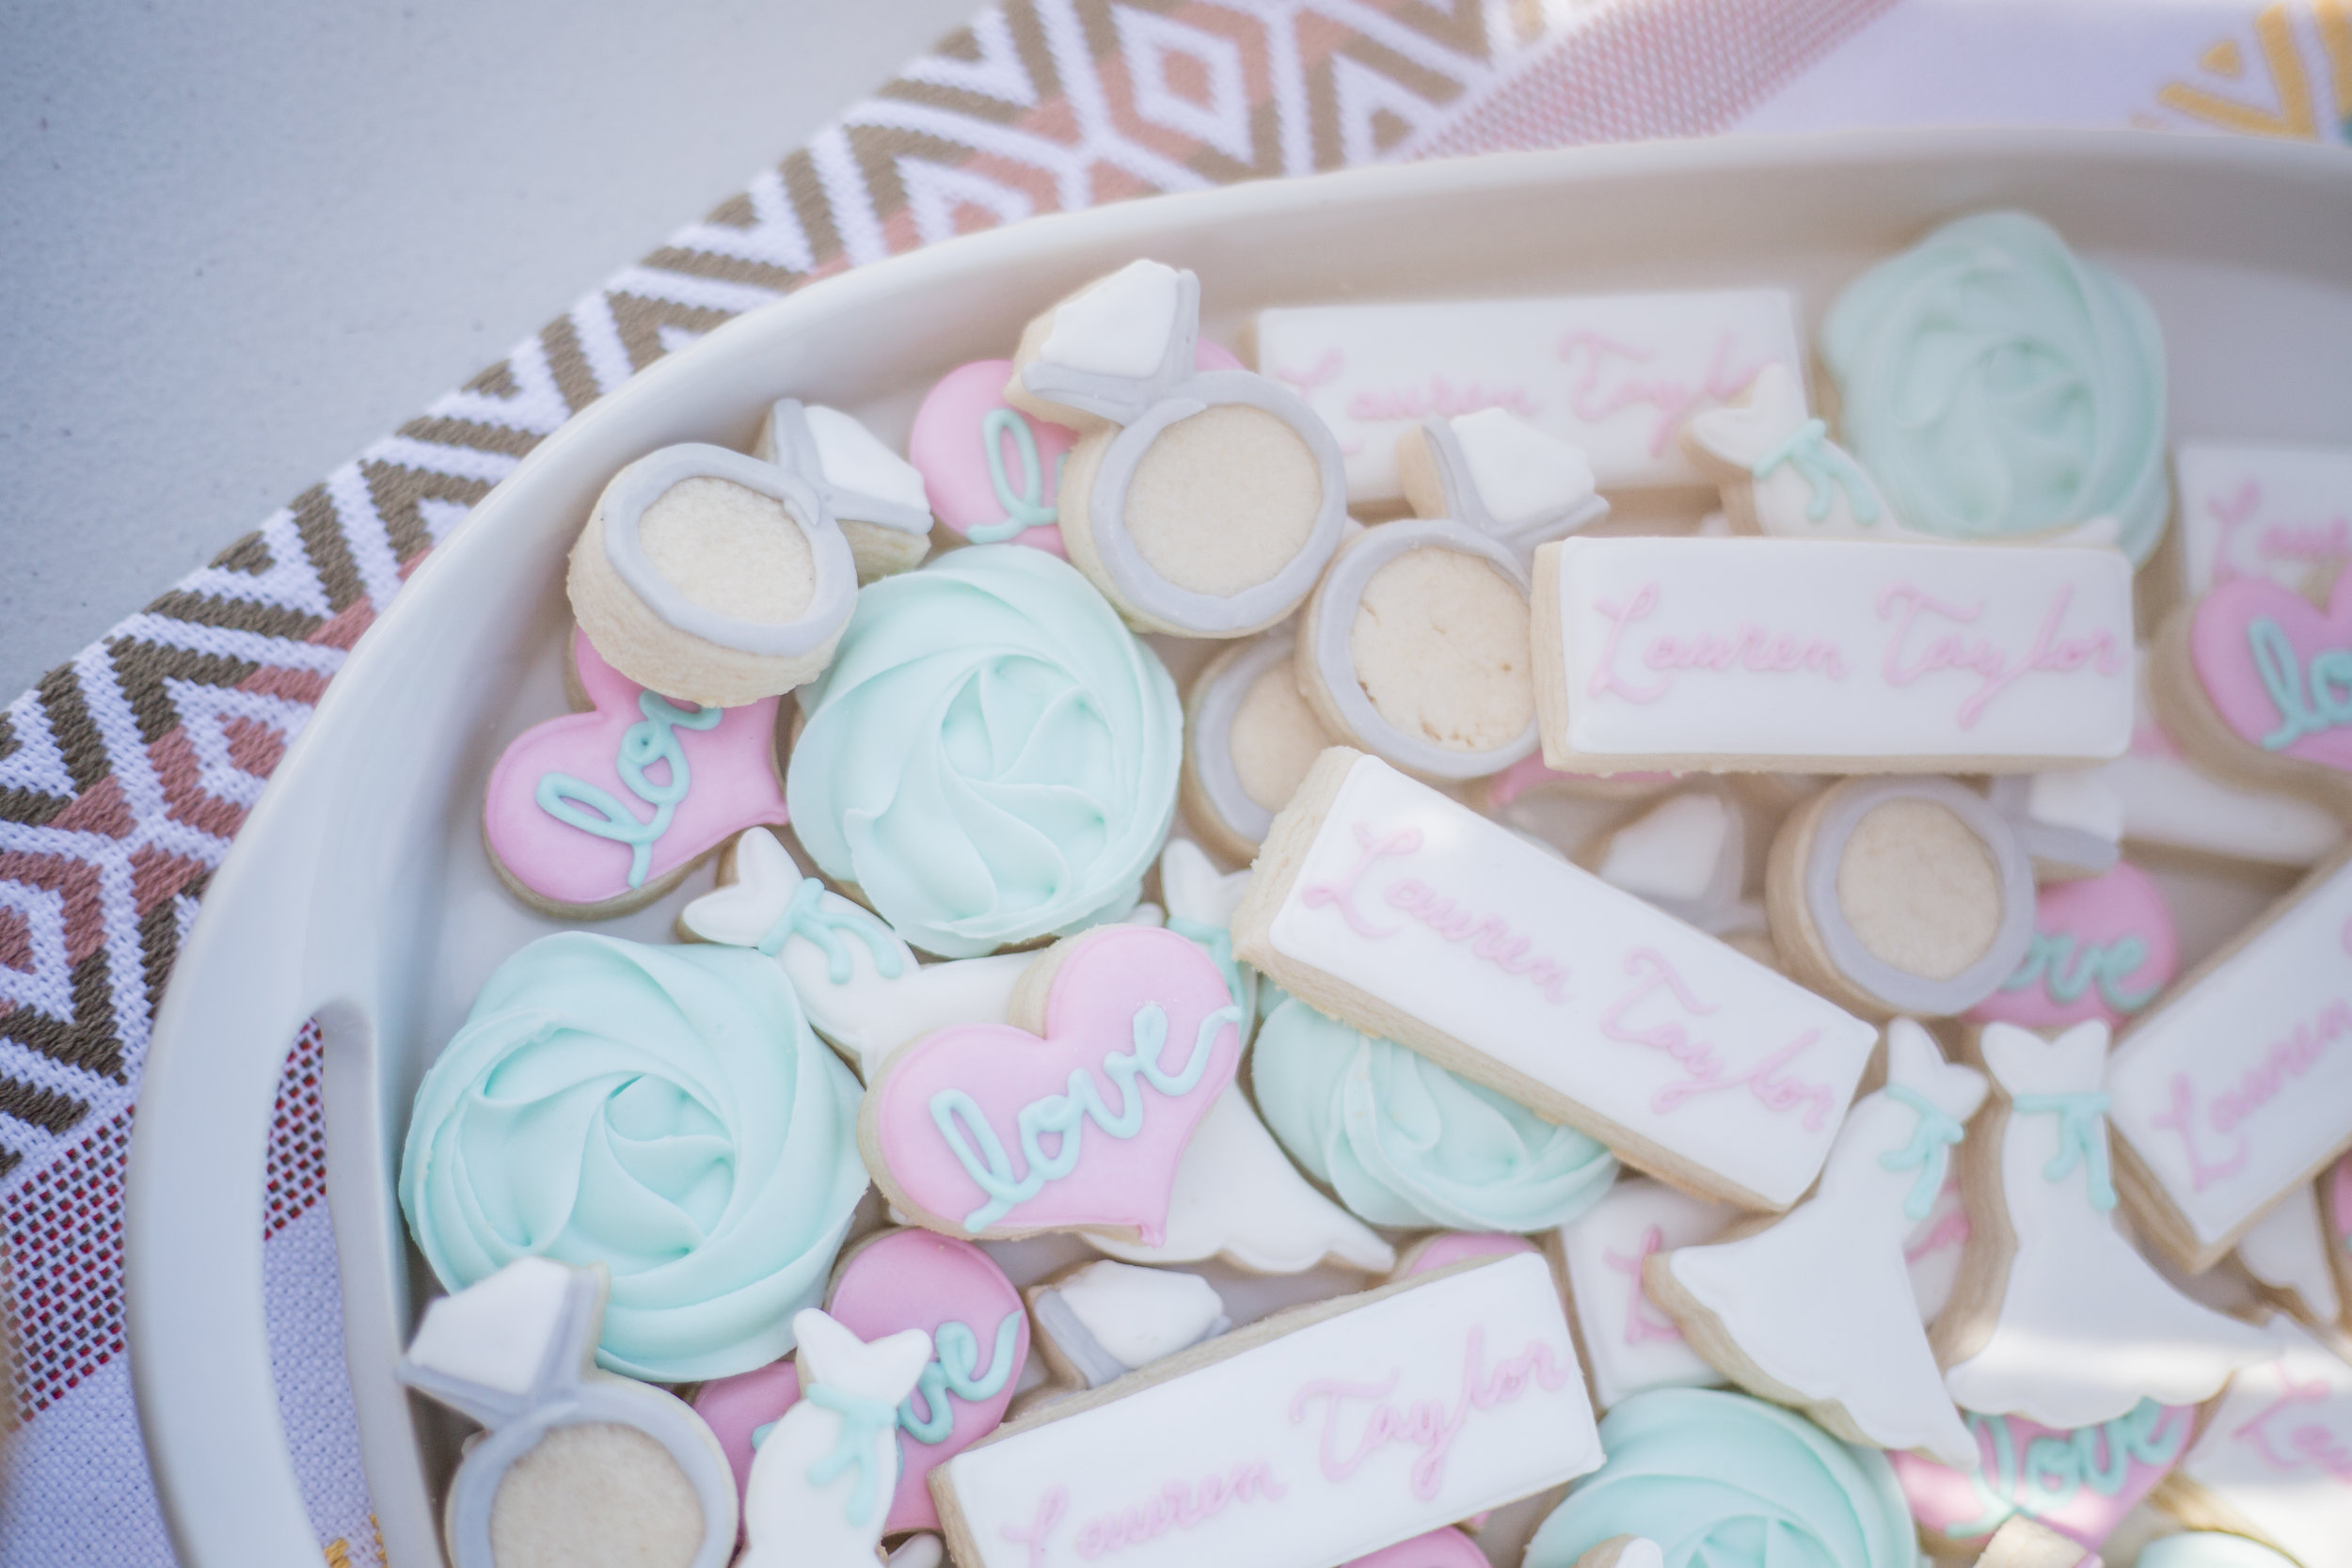 It's fun to see your brand (and name!) come to life in COOKIES!